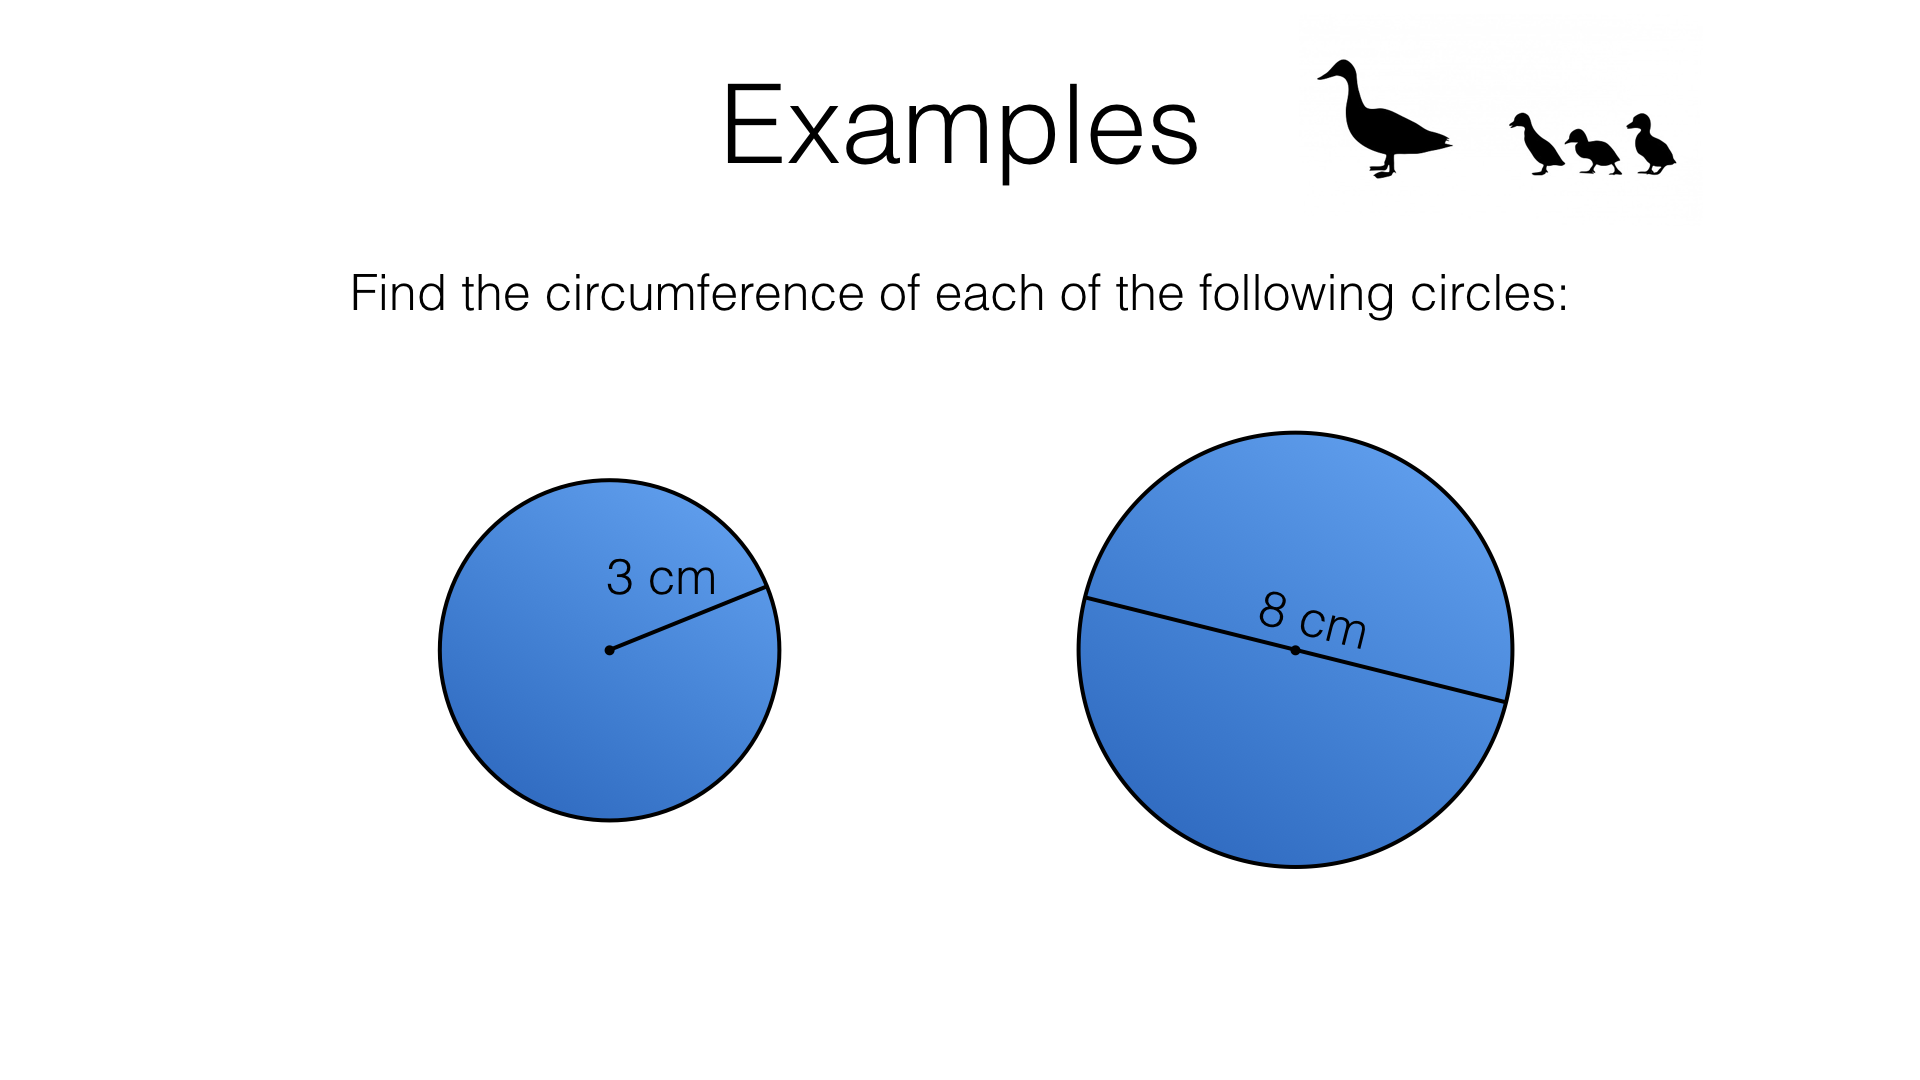 circumference of 1 2 of a circle The circumference of a circle is 2(pi)r r is the radius the radius is 1/2 the diameter, so we know that r = 1/2 now plug it into the circumference equation 2(pi)(1/2) = 1 (pi) answer: 1(pi) inches, or 31415 inches.